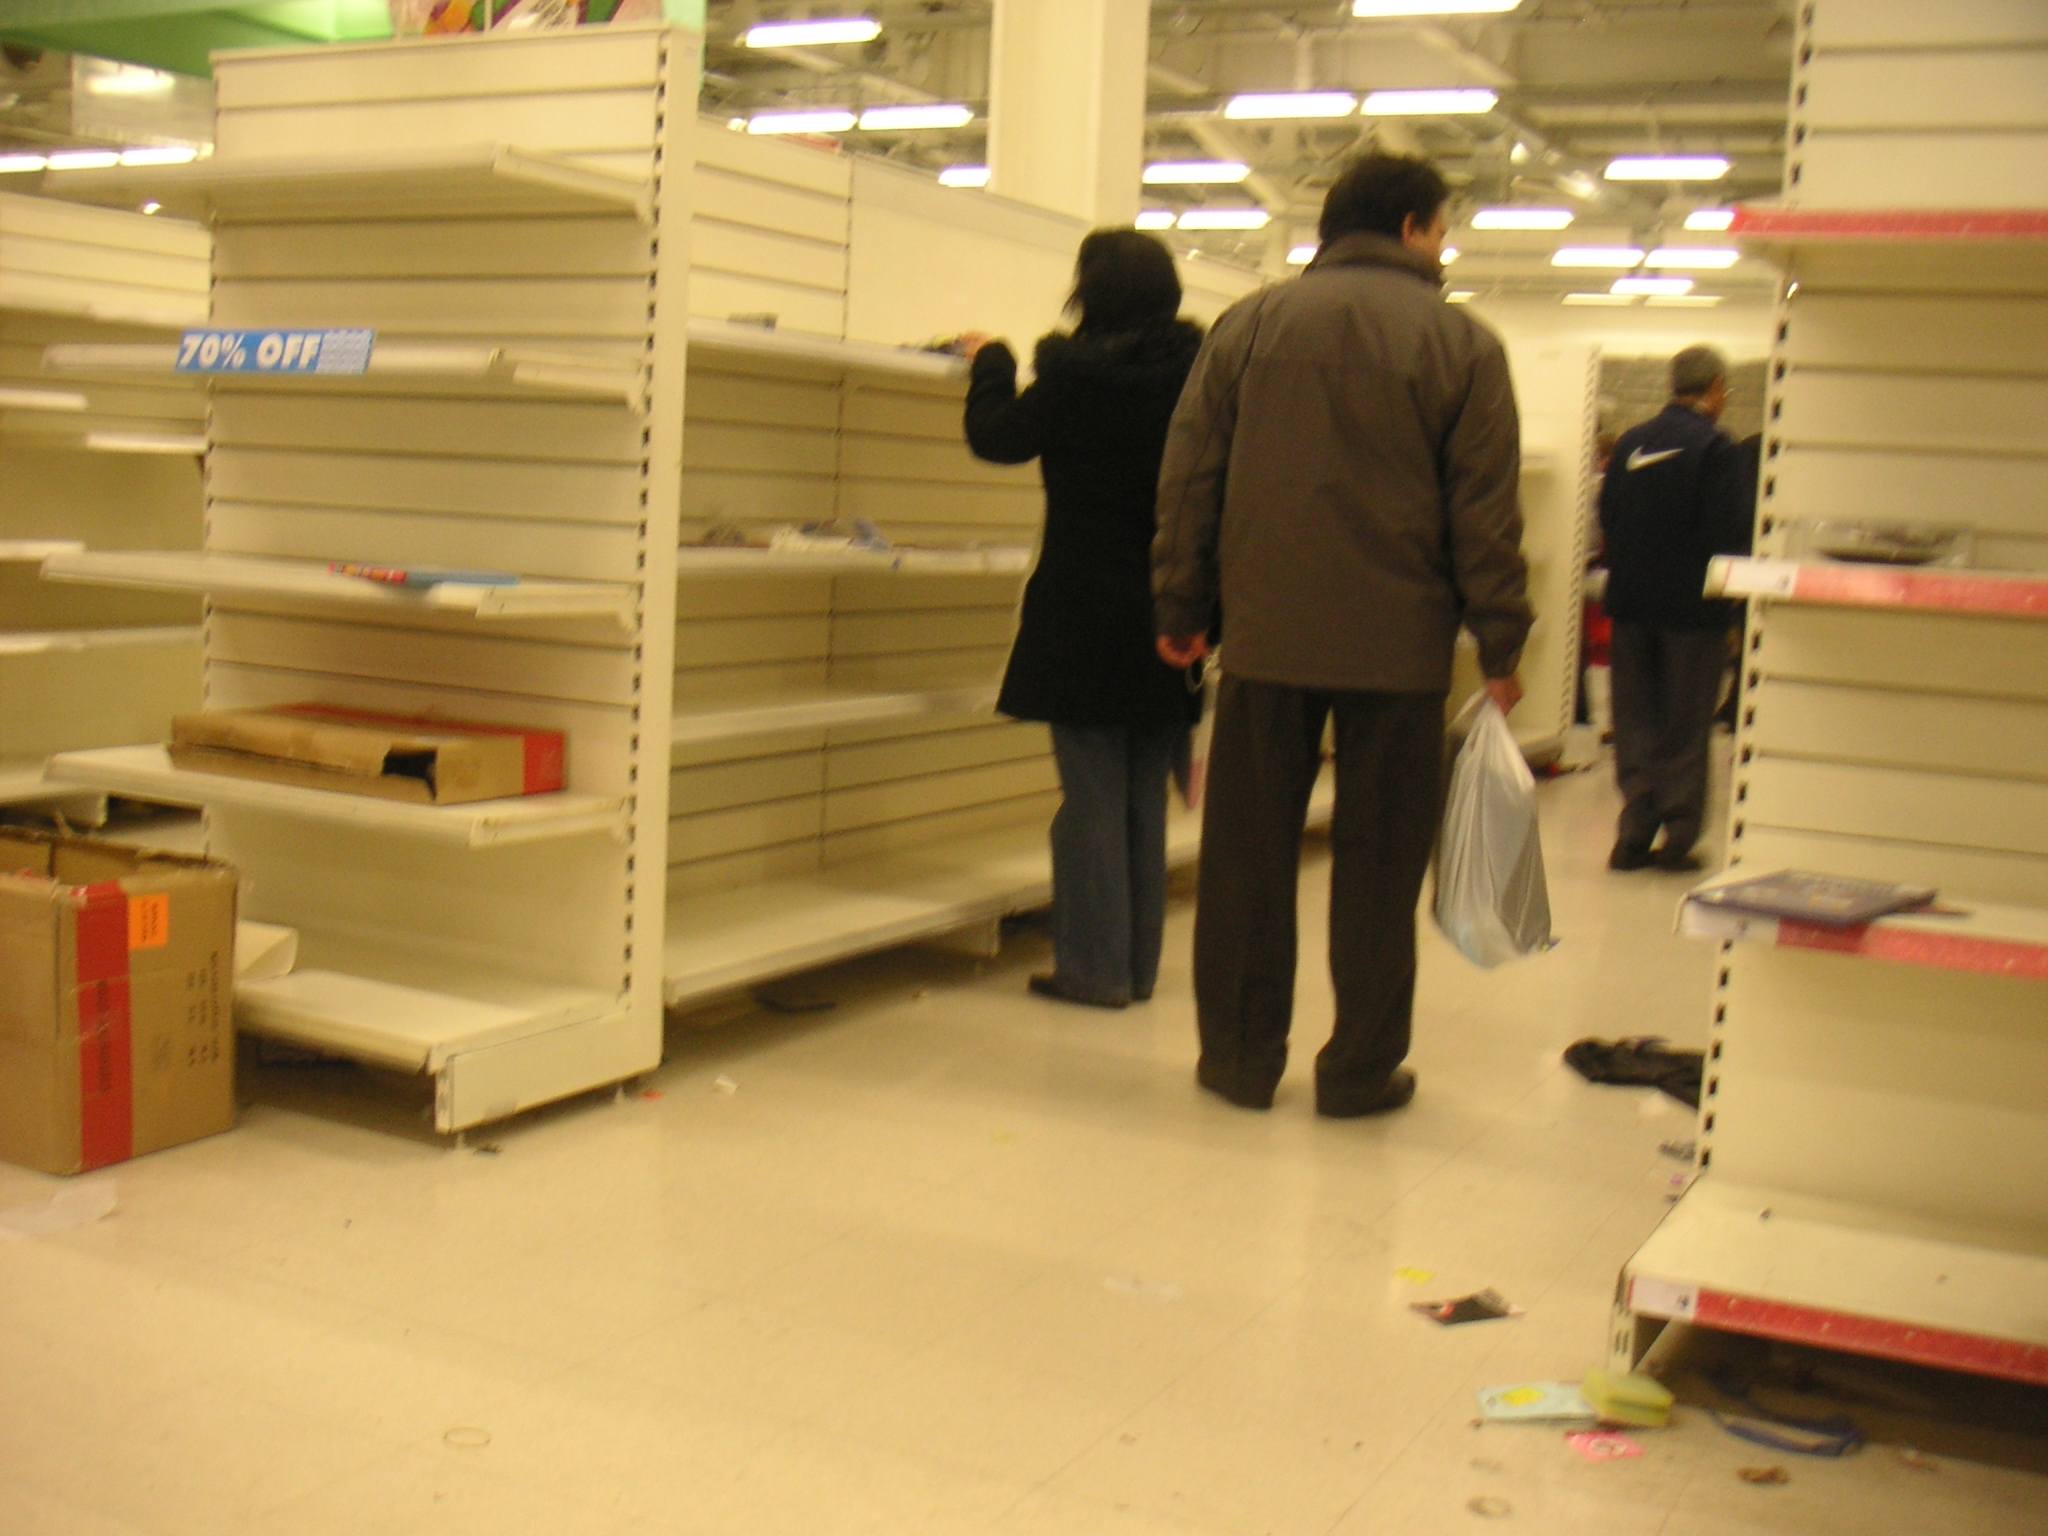 The last day at Woolworth's and there are a few shoppers browsing the very few items left on the shelves.